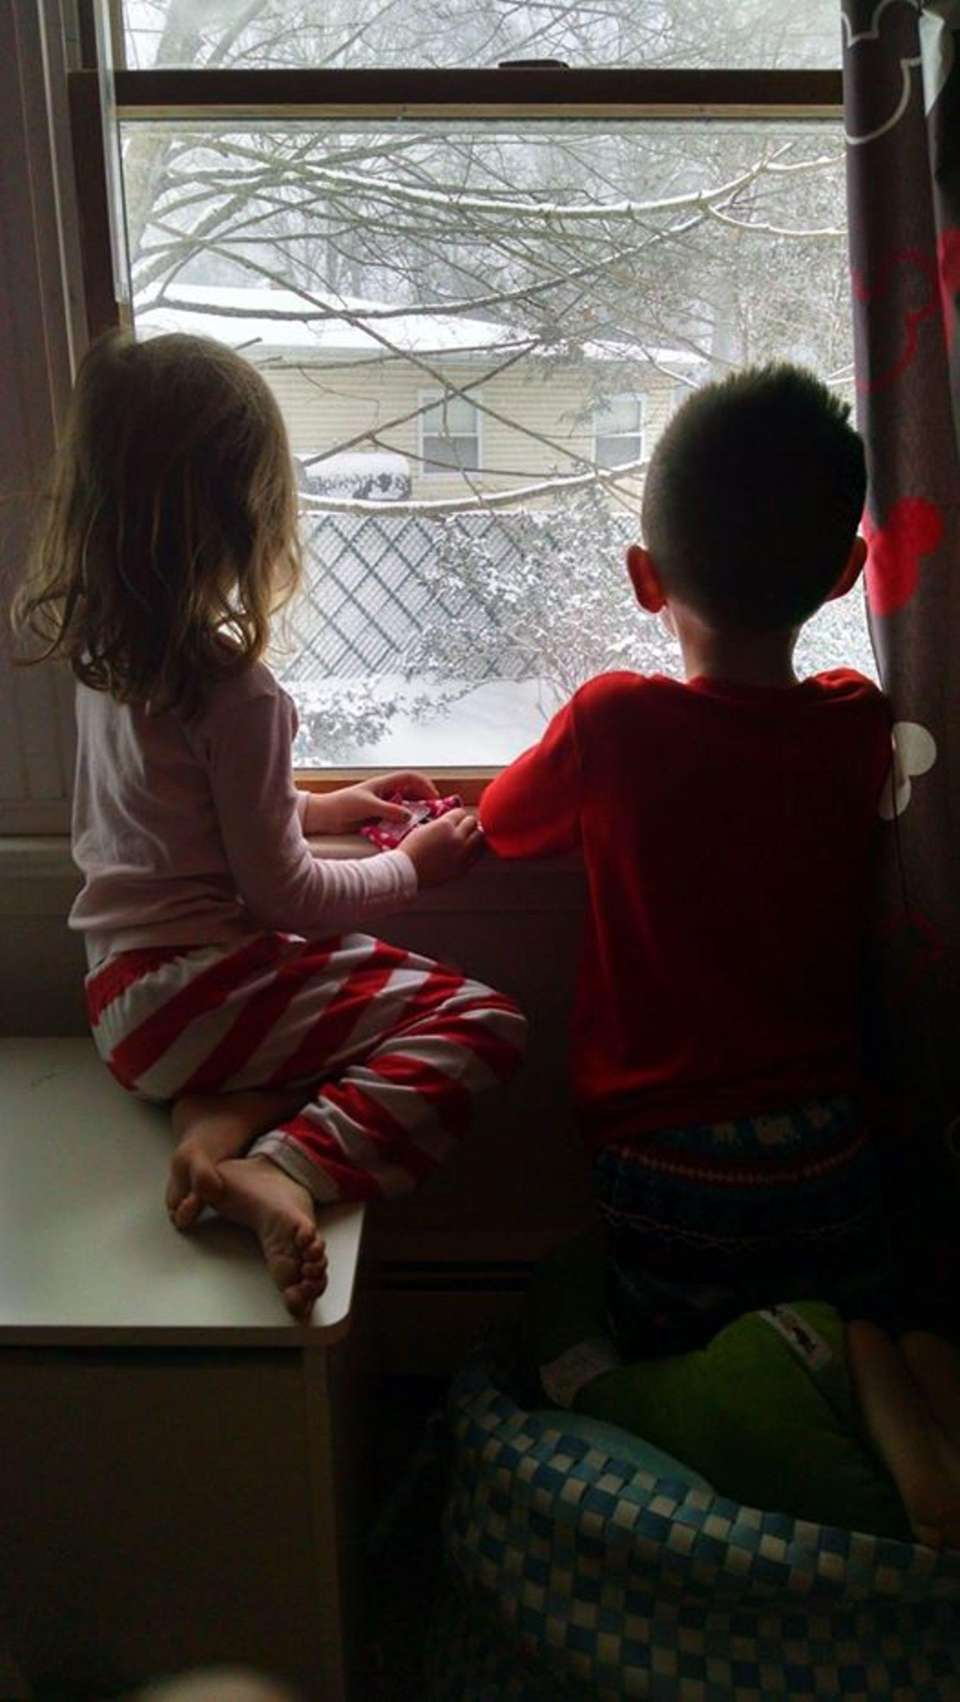 Ryan and Emma Keneski watching the snow while